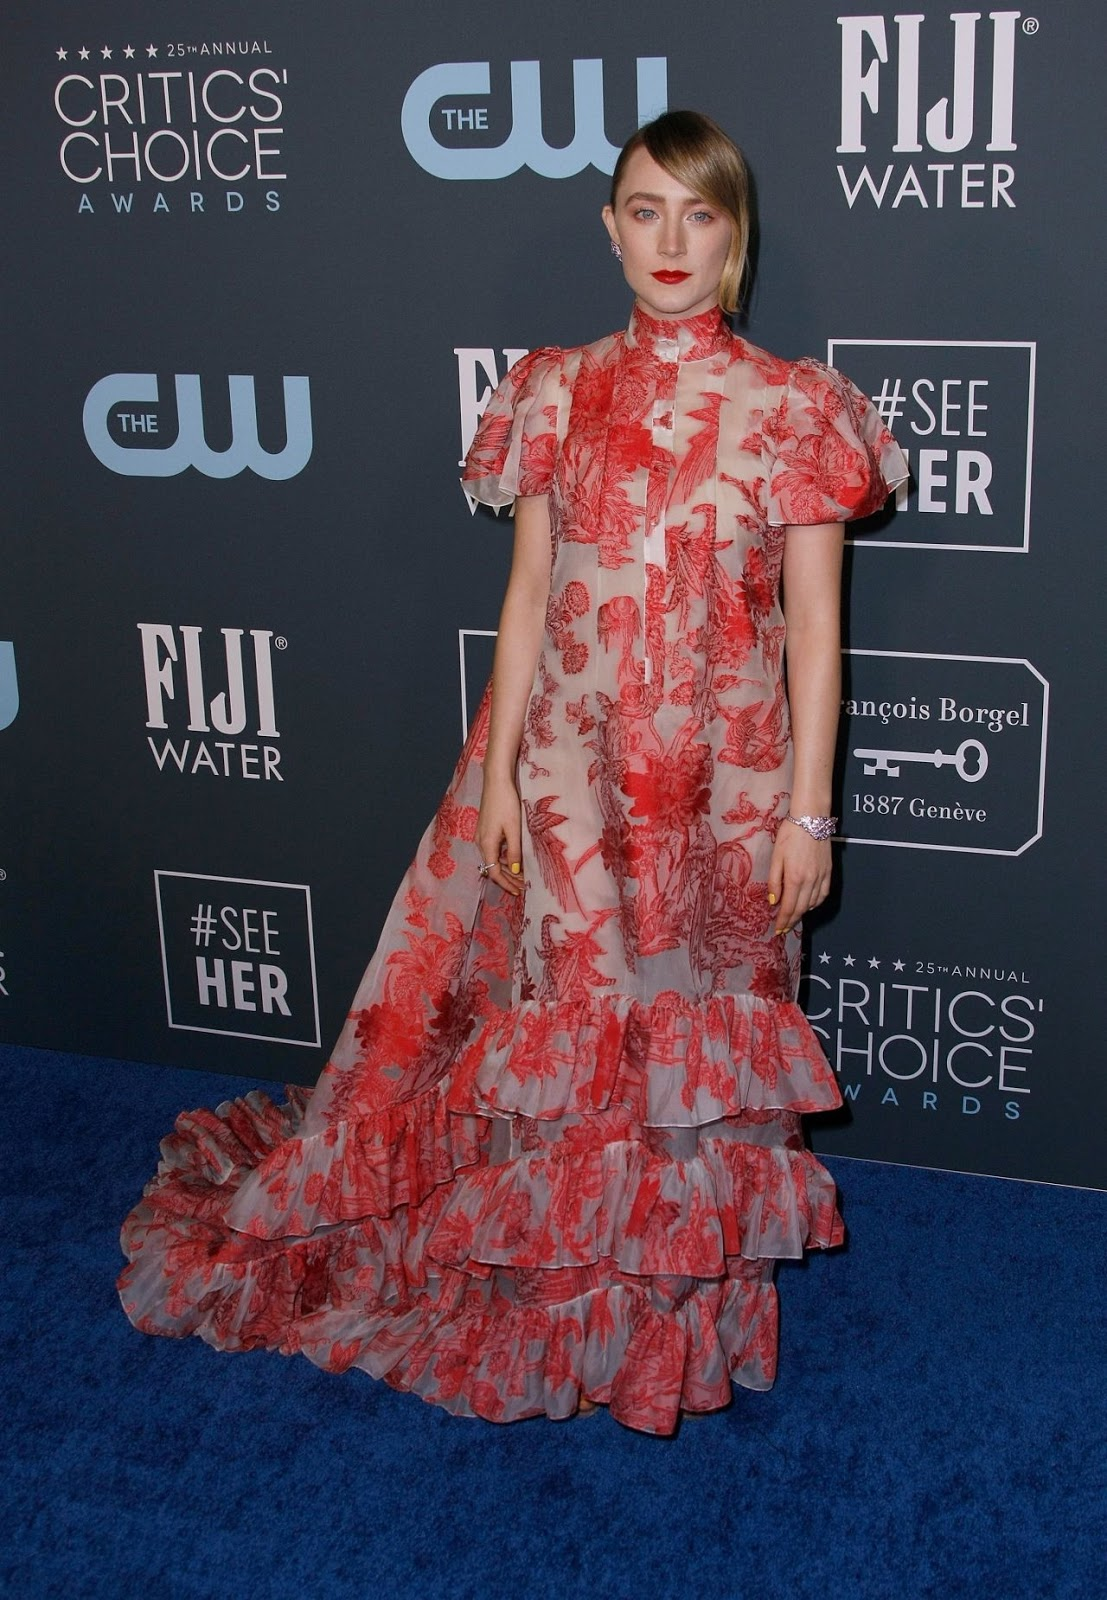 Saoirse Ronan makes a floral statement in Erdem at the 2020 Critics' Choice Awards